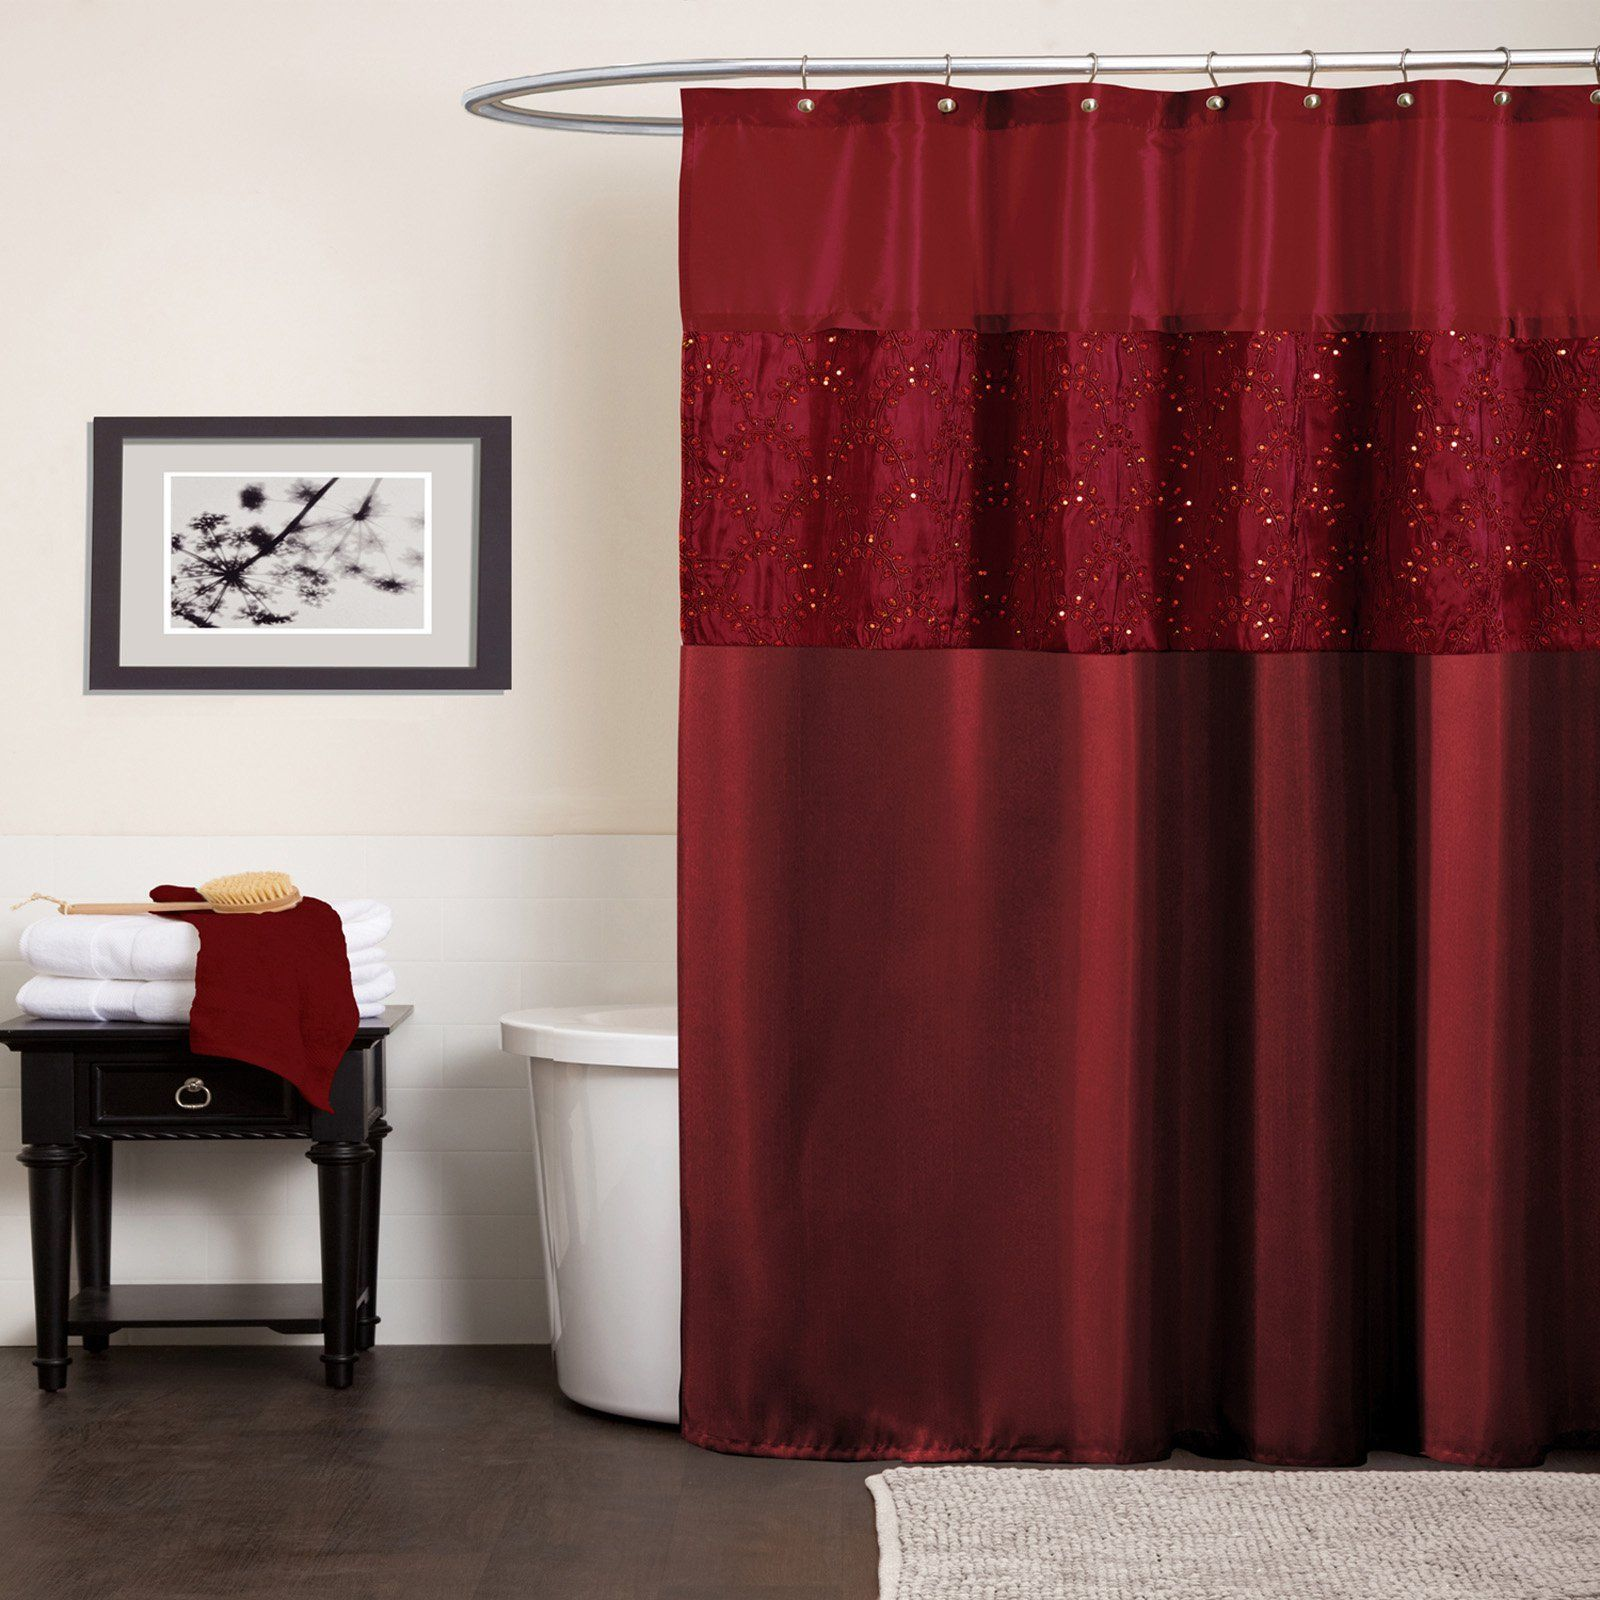 Red Hookless Shower Curtain Part - 34: Red Hookless Shower Curtain